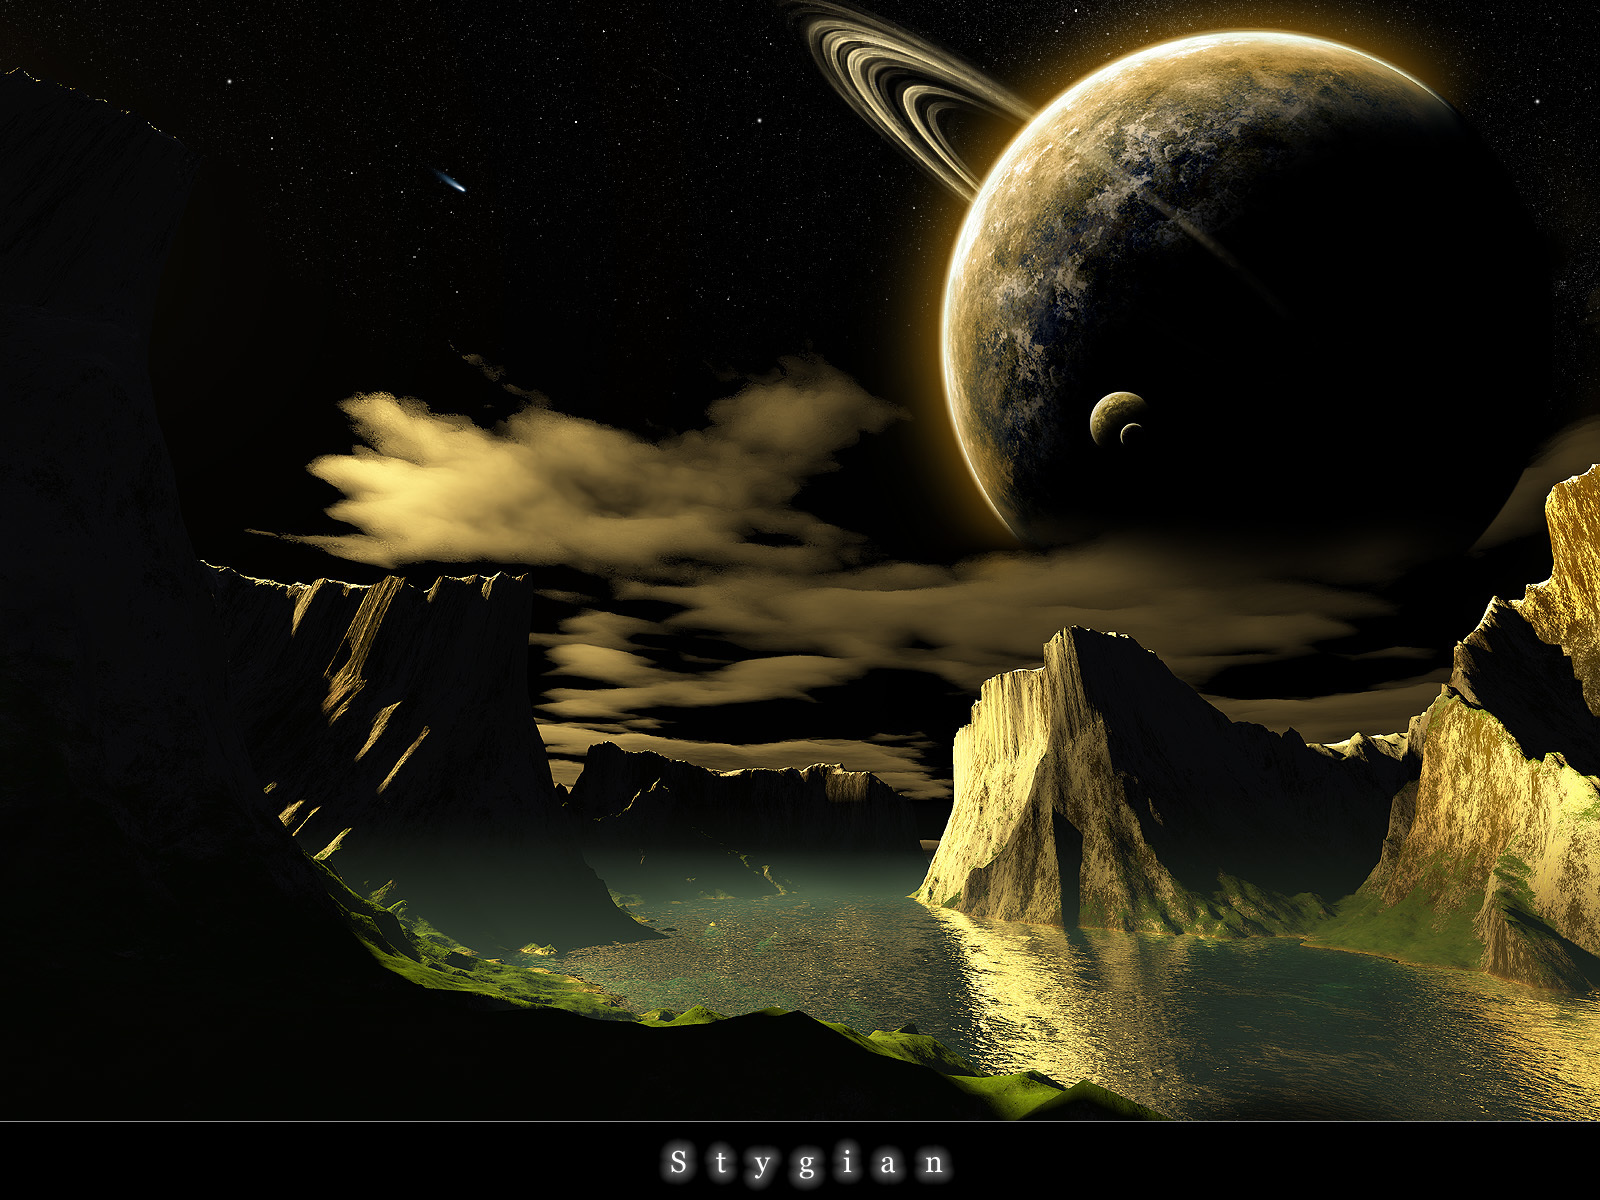 Space Art Wallpaper Sci Fi   Space Wallpaper 8069819 1600x1200